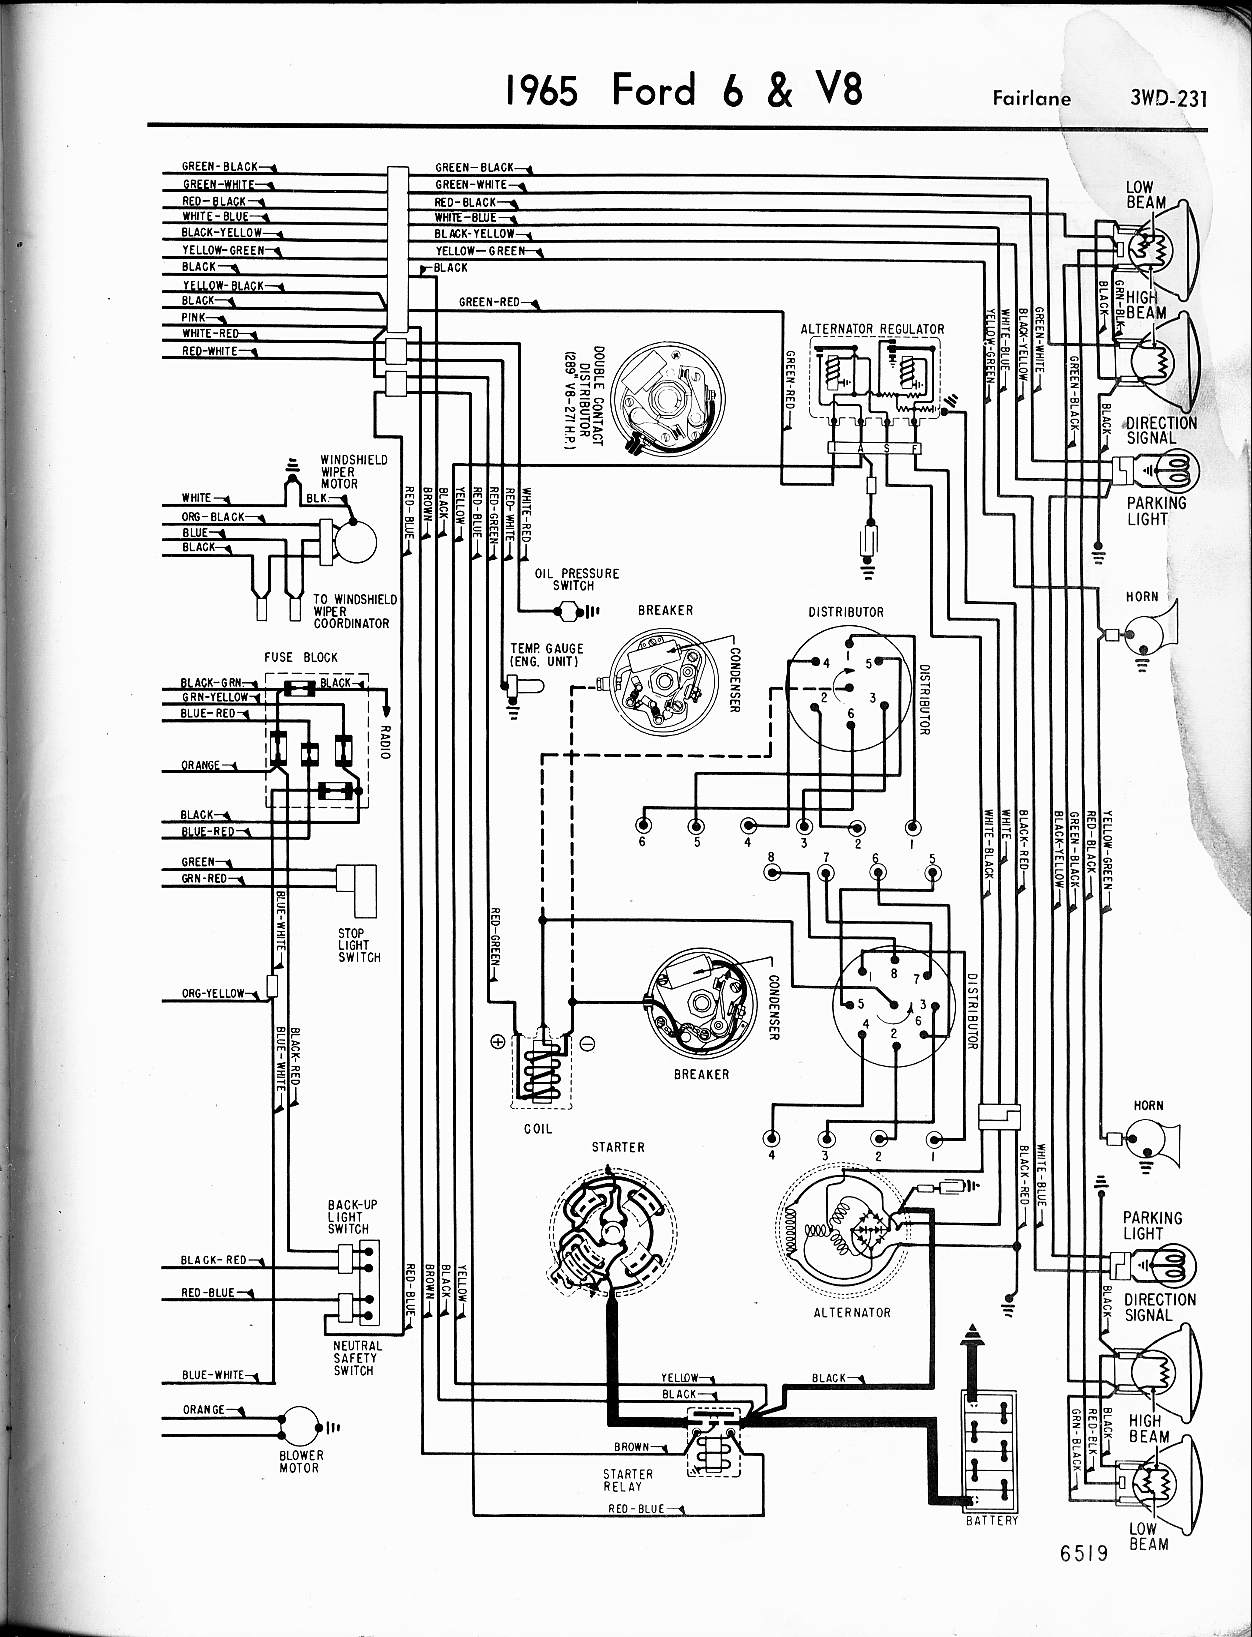 1965 ford wiring diagram schematics wiring diagrams u2022 rh seniorlivinguniversity co Ford Pinto Ignition Wiring Diagram Ford Pinto Wiring Harness